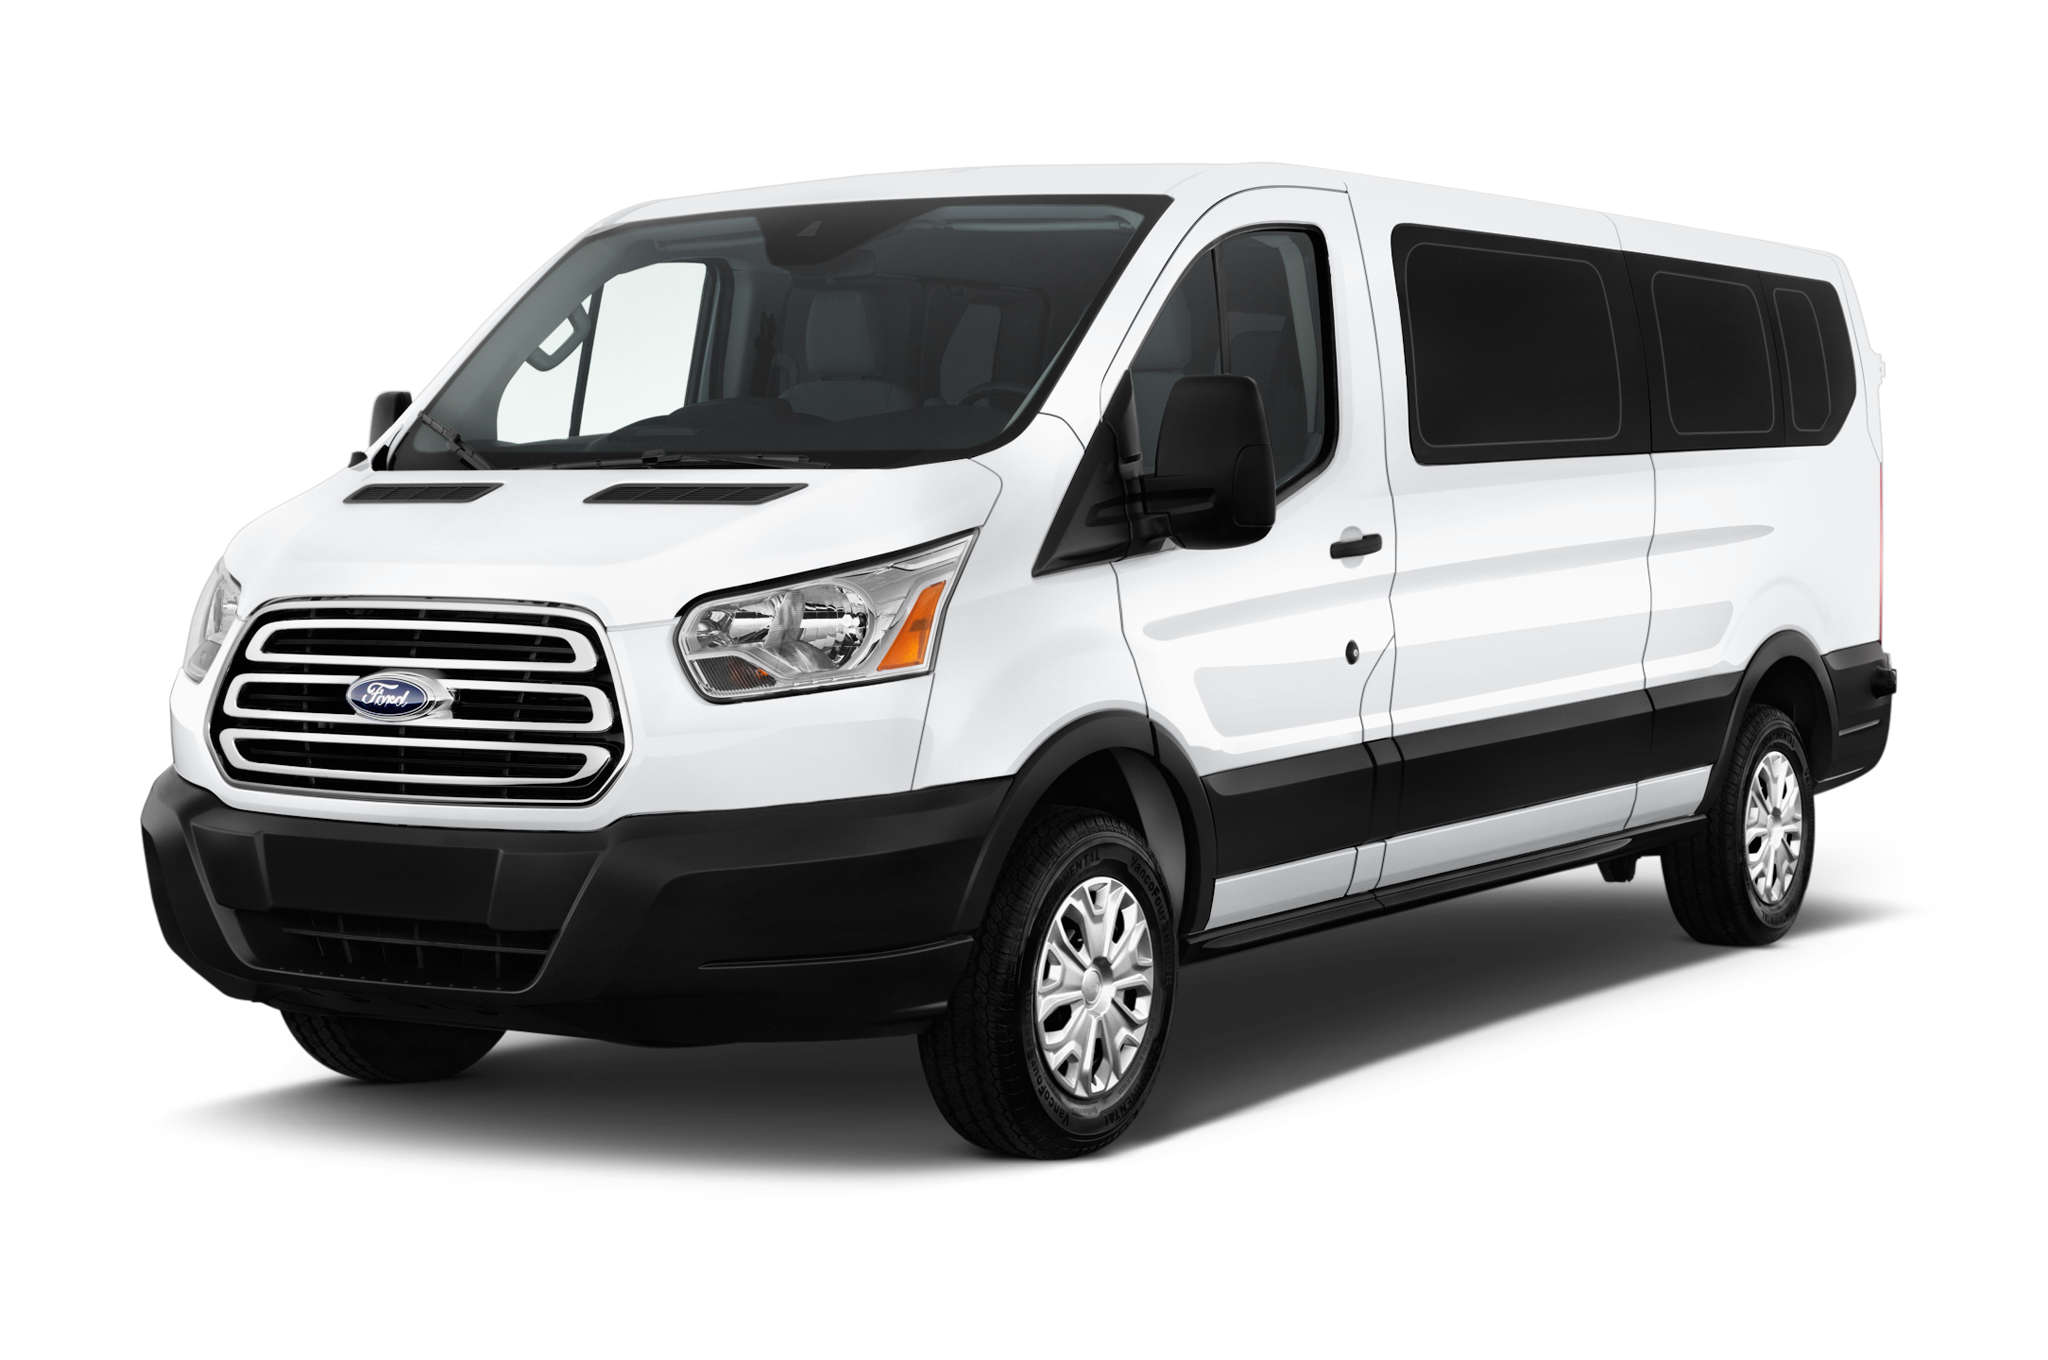 2015 ford transit 150 xlt wagon low roof sliding pass 130 specs and features msn autos. Black Bedroom Furniture Sets. Home Design Ideas